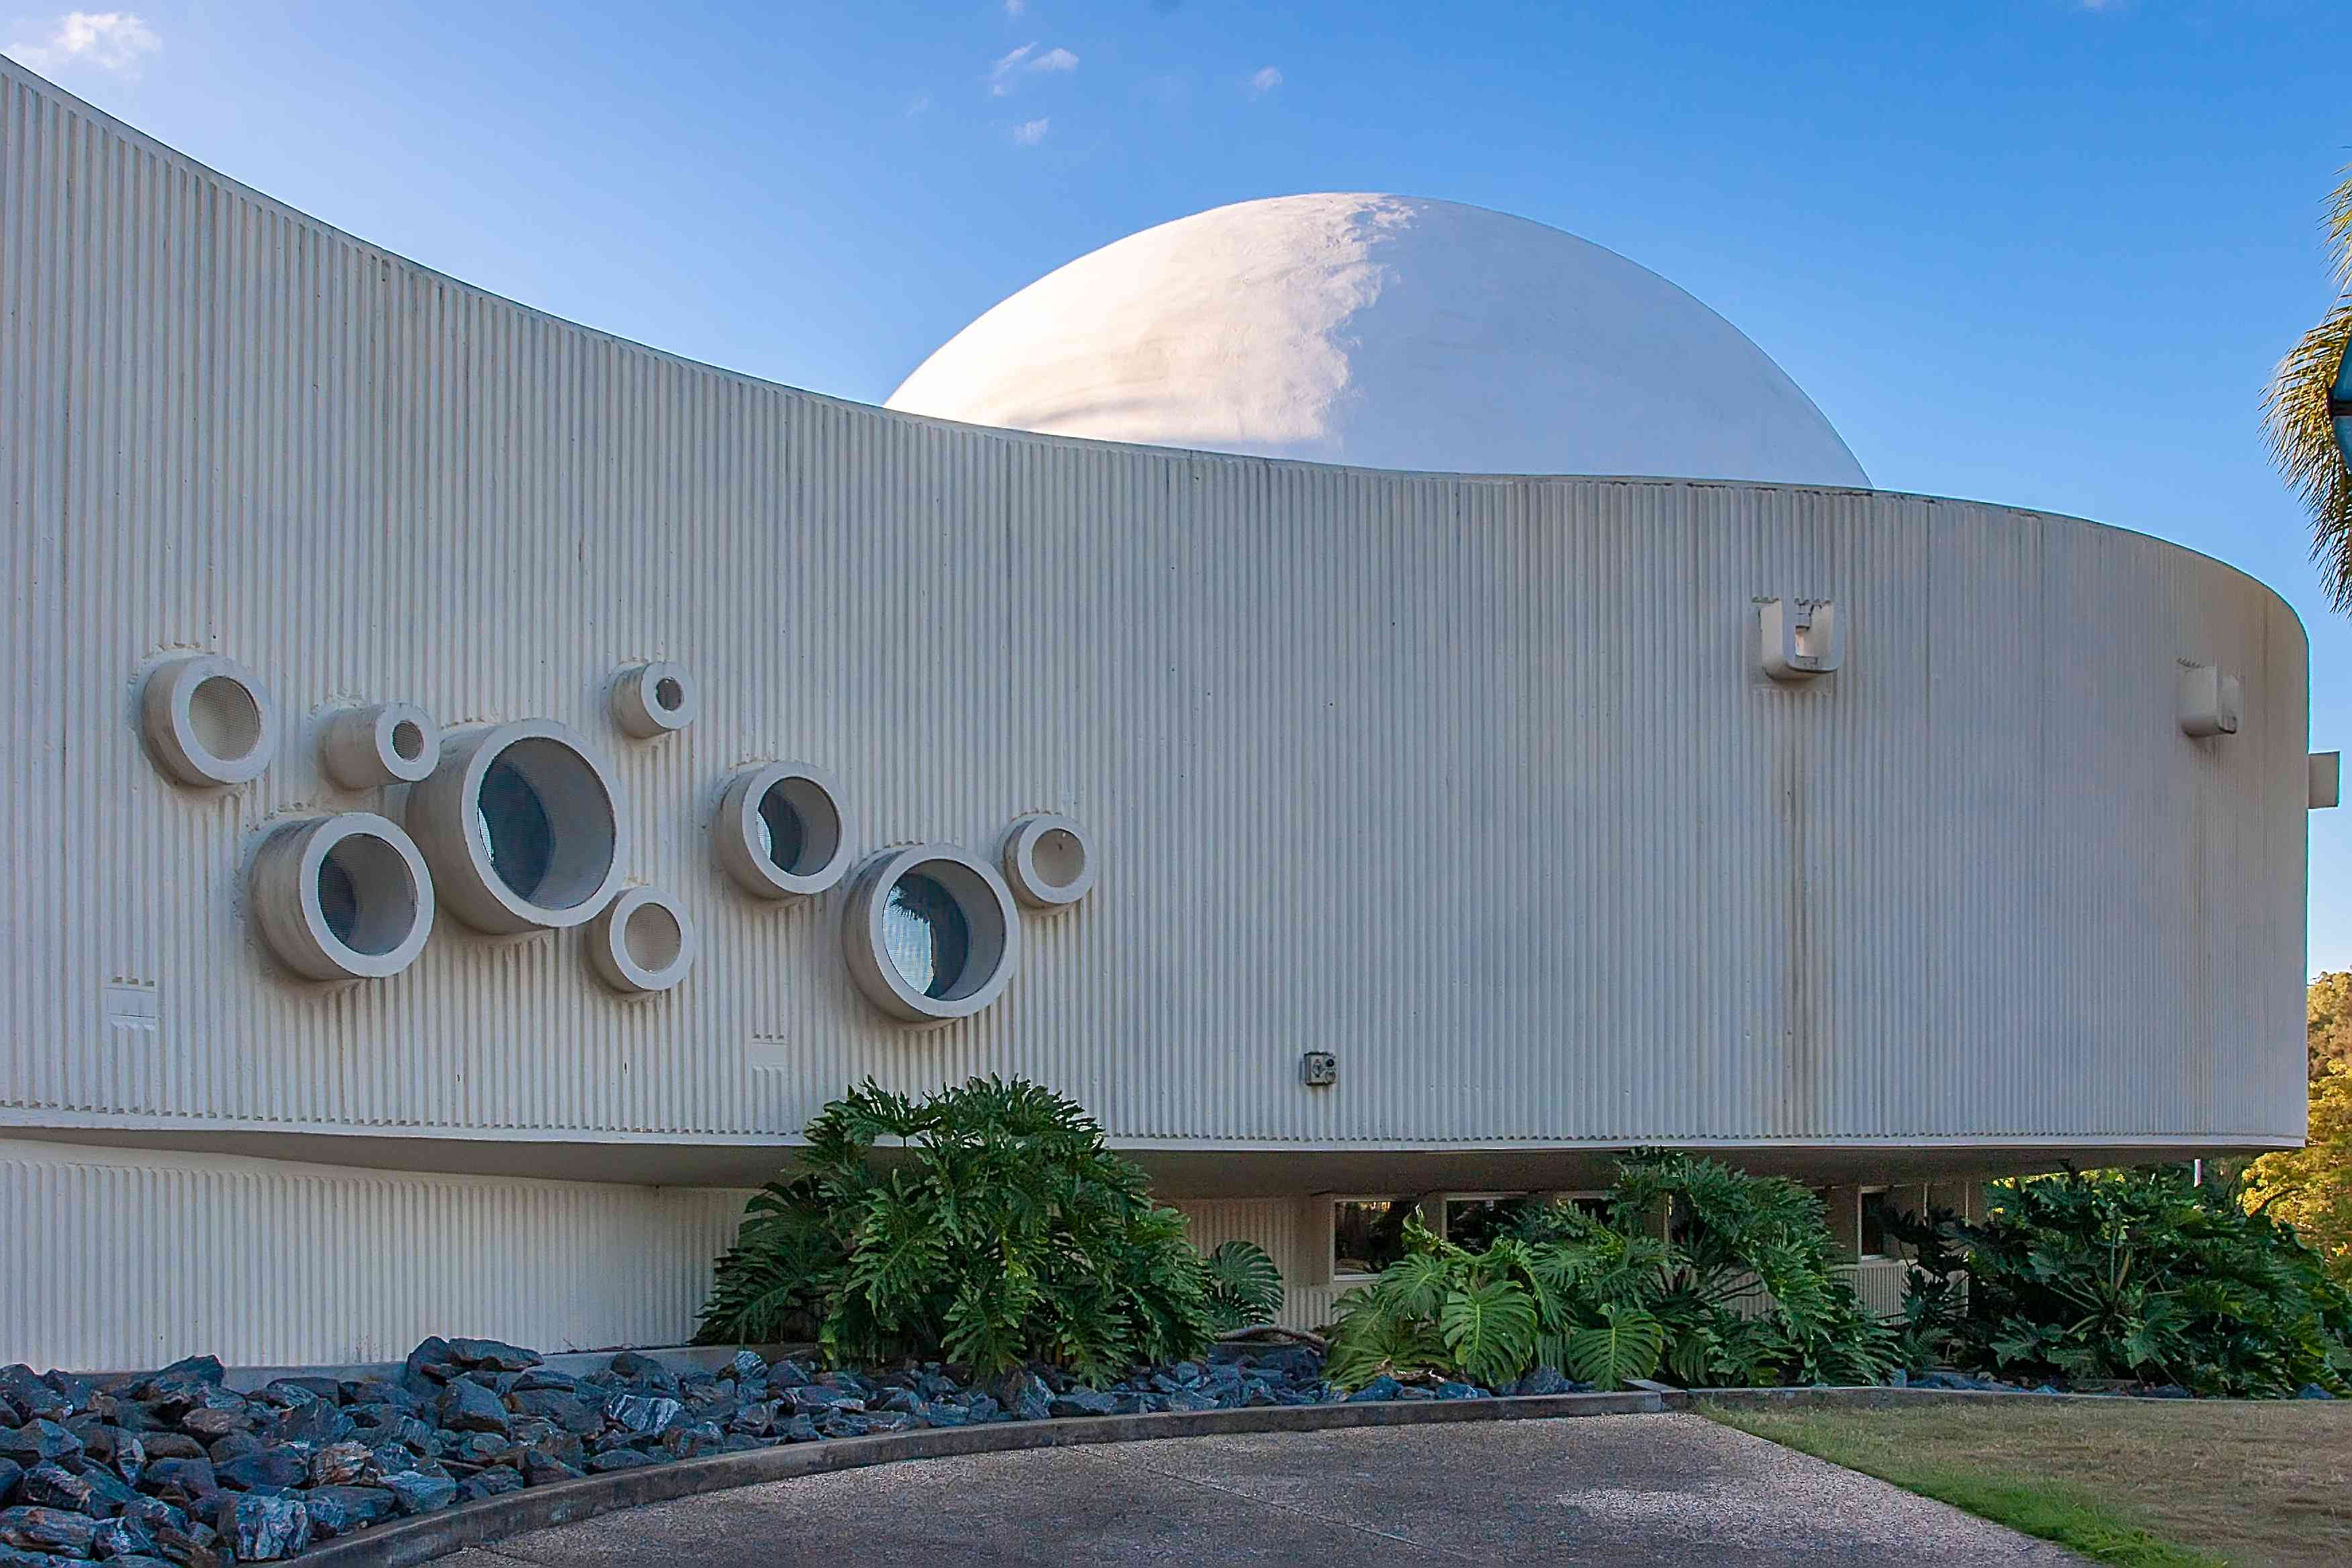 White curved exterior walls at the planetarium in the Mt Coot-tha Botanical Gardens, Brisbane